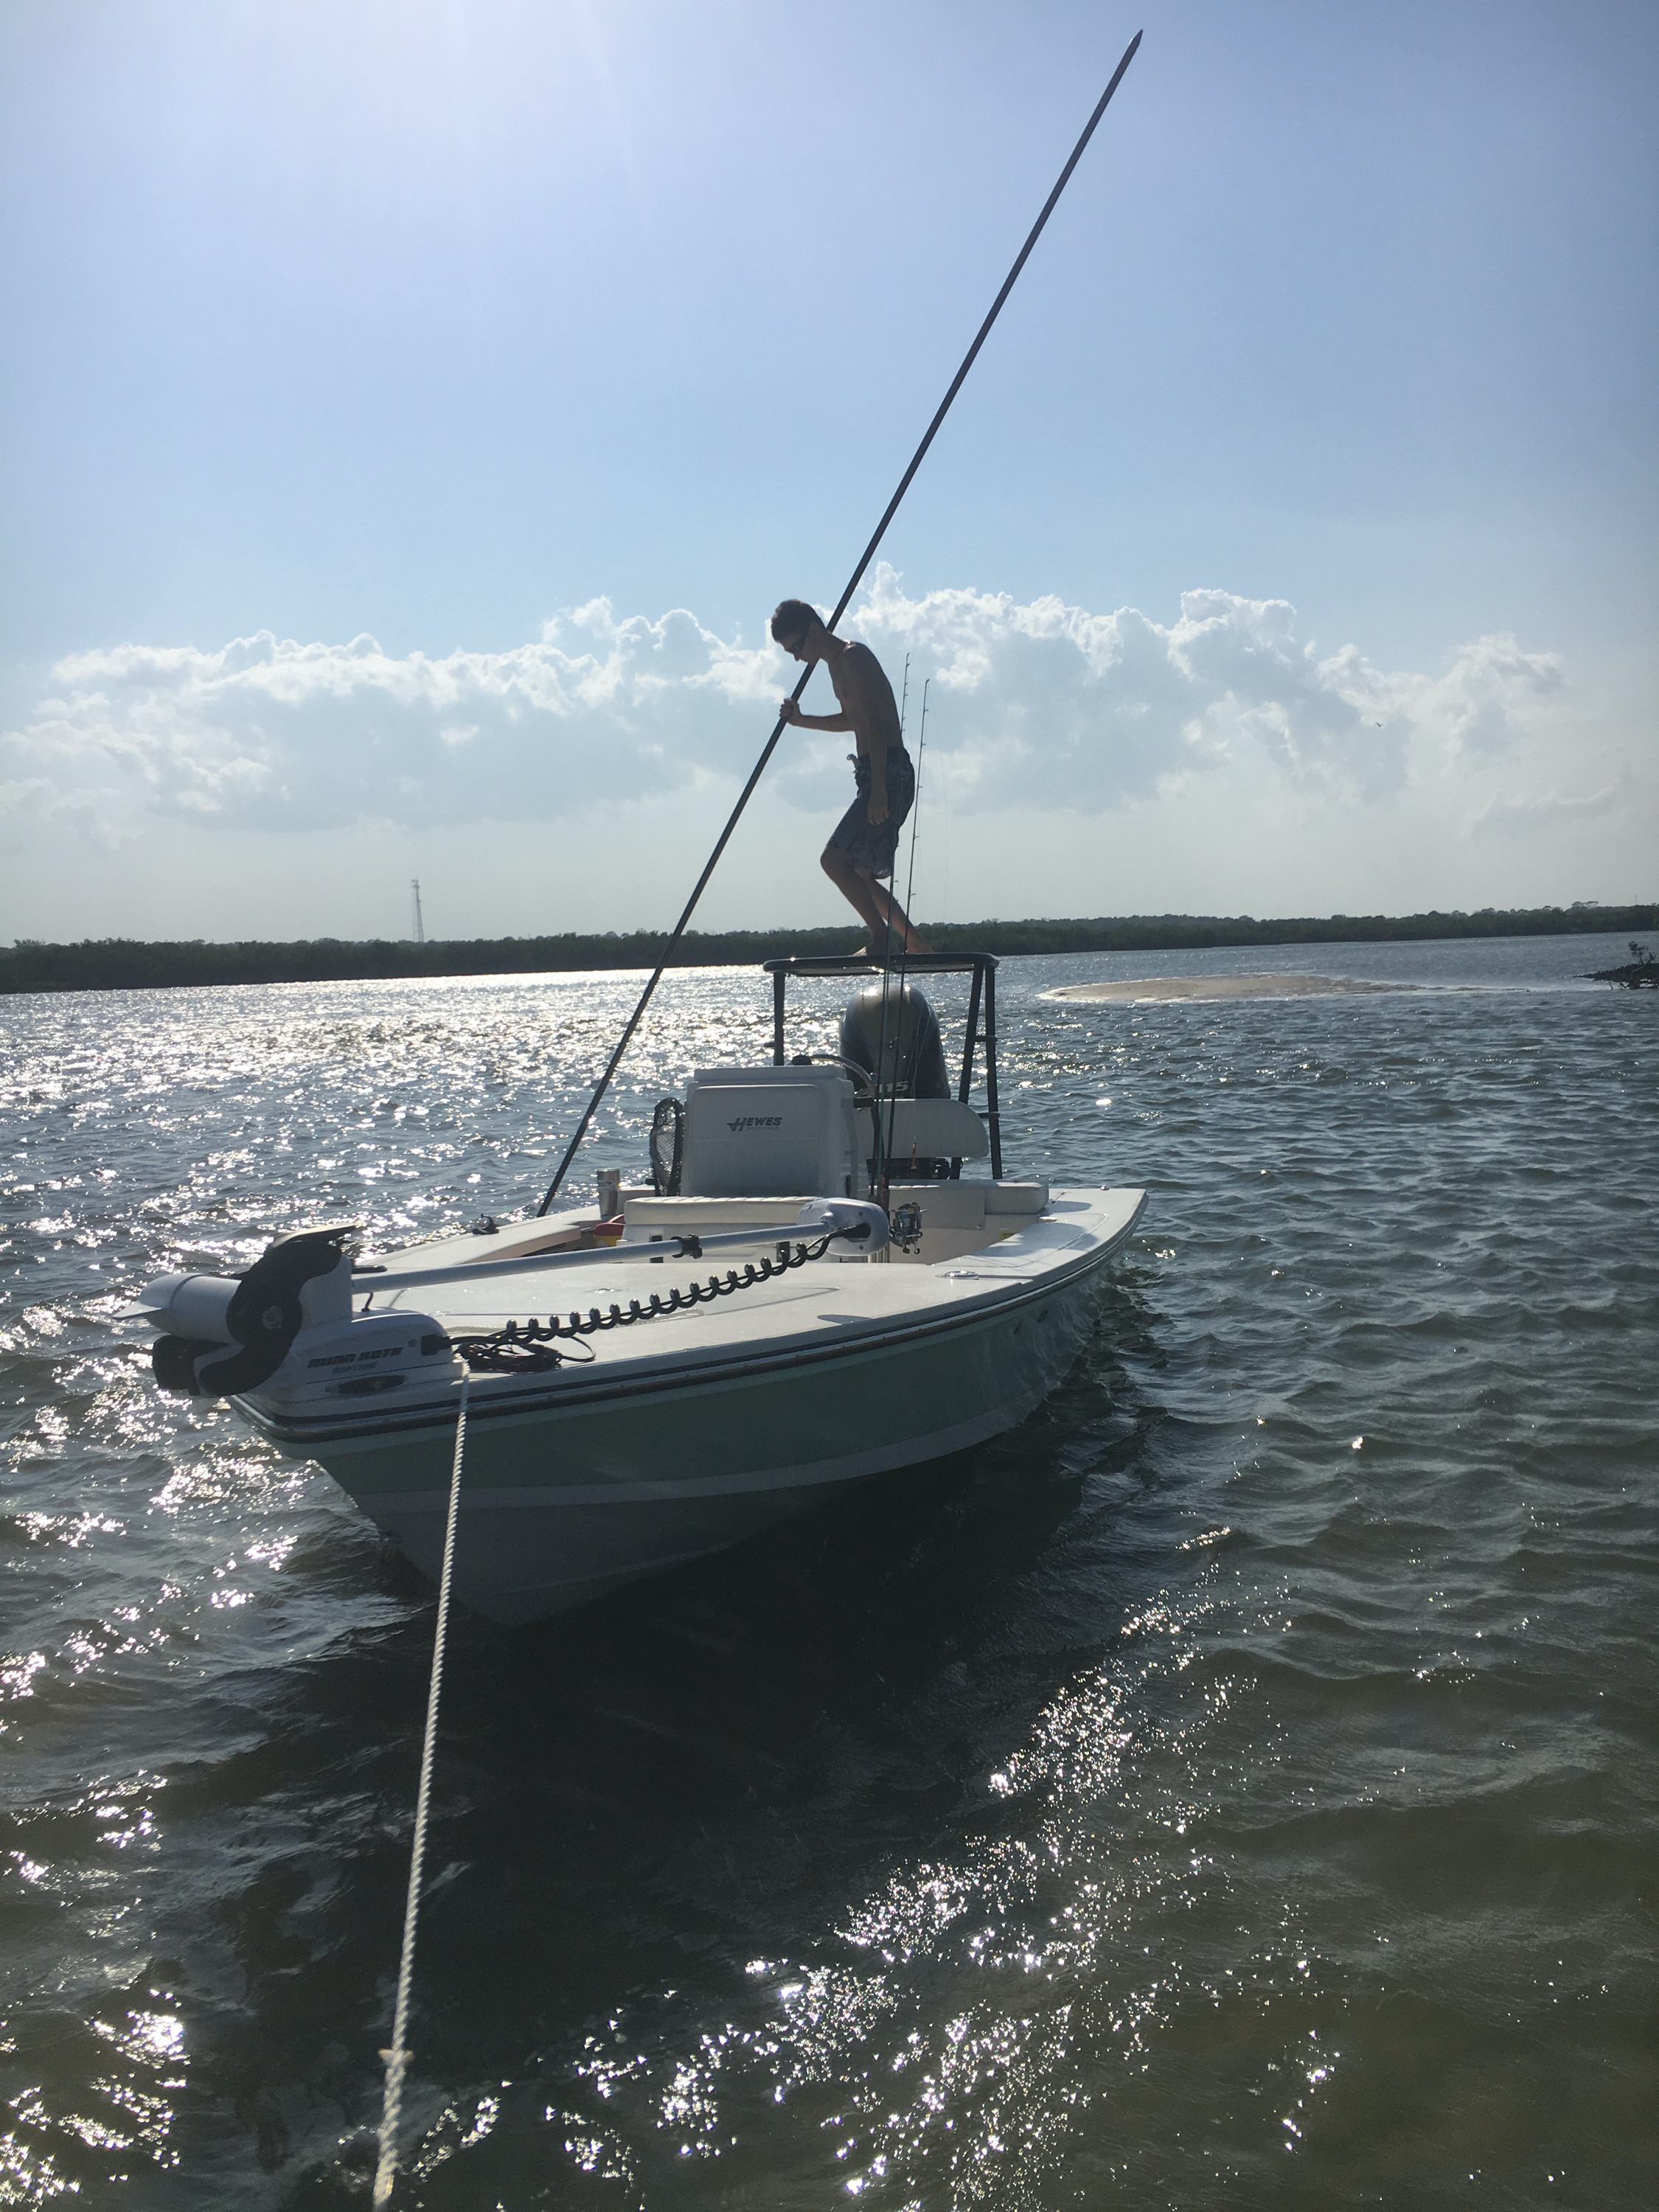 boat with poling platform being used